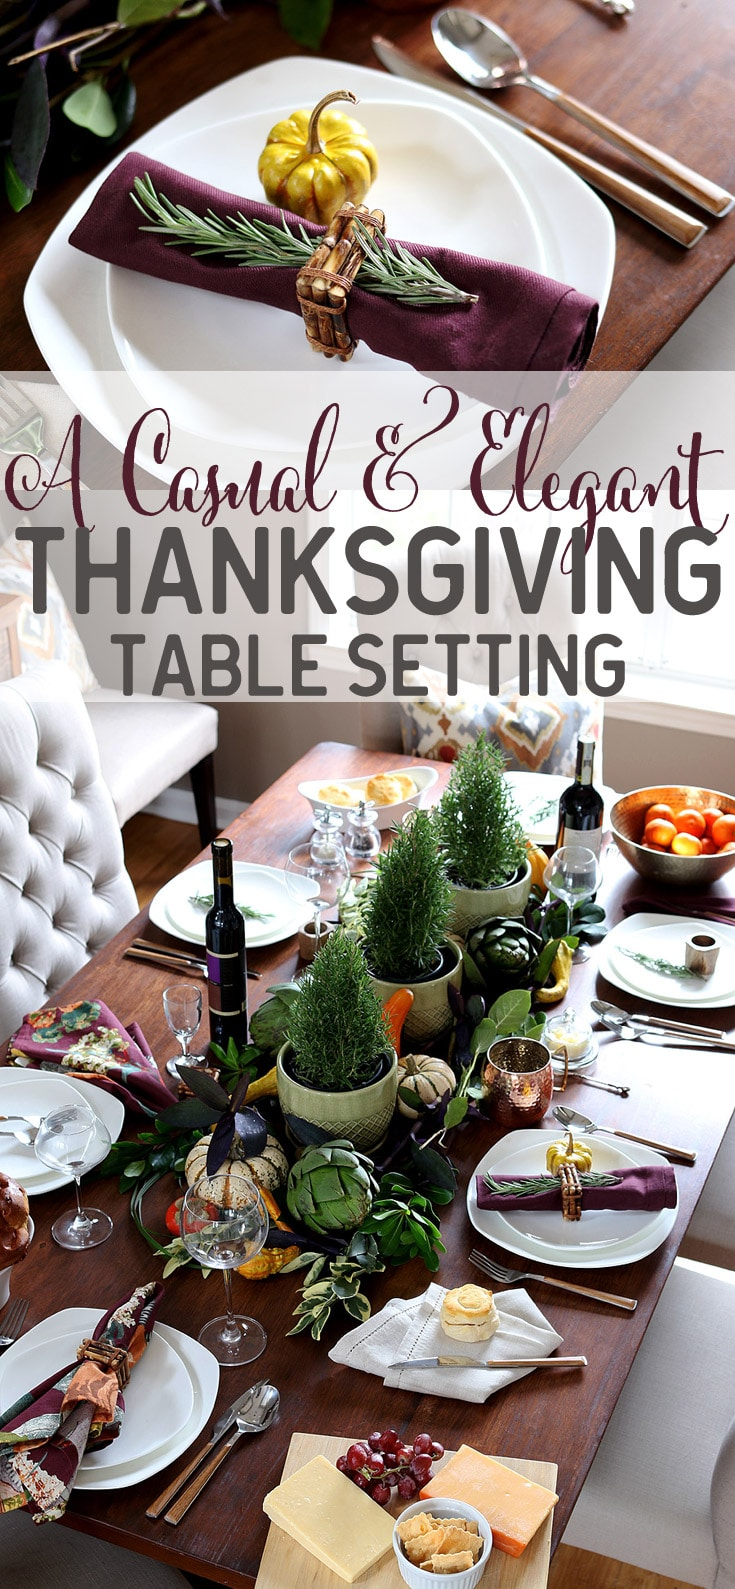 A casual yet elegant Thanksgiving table setting via Jen Woodhouse